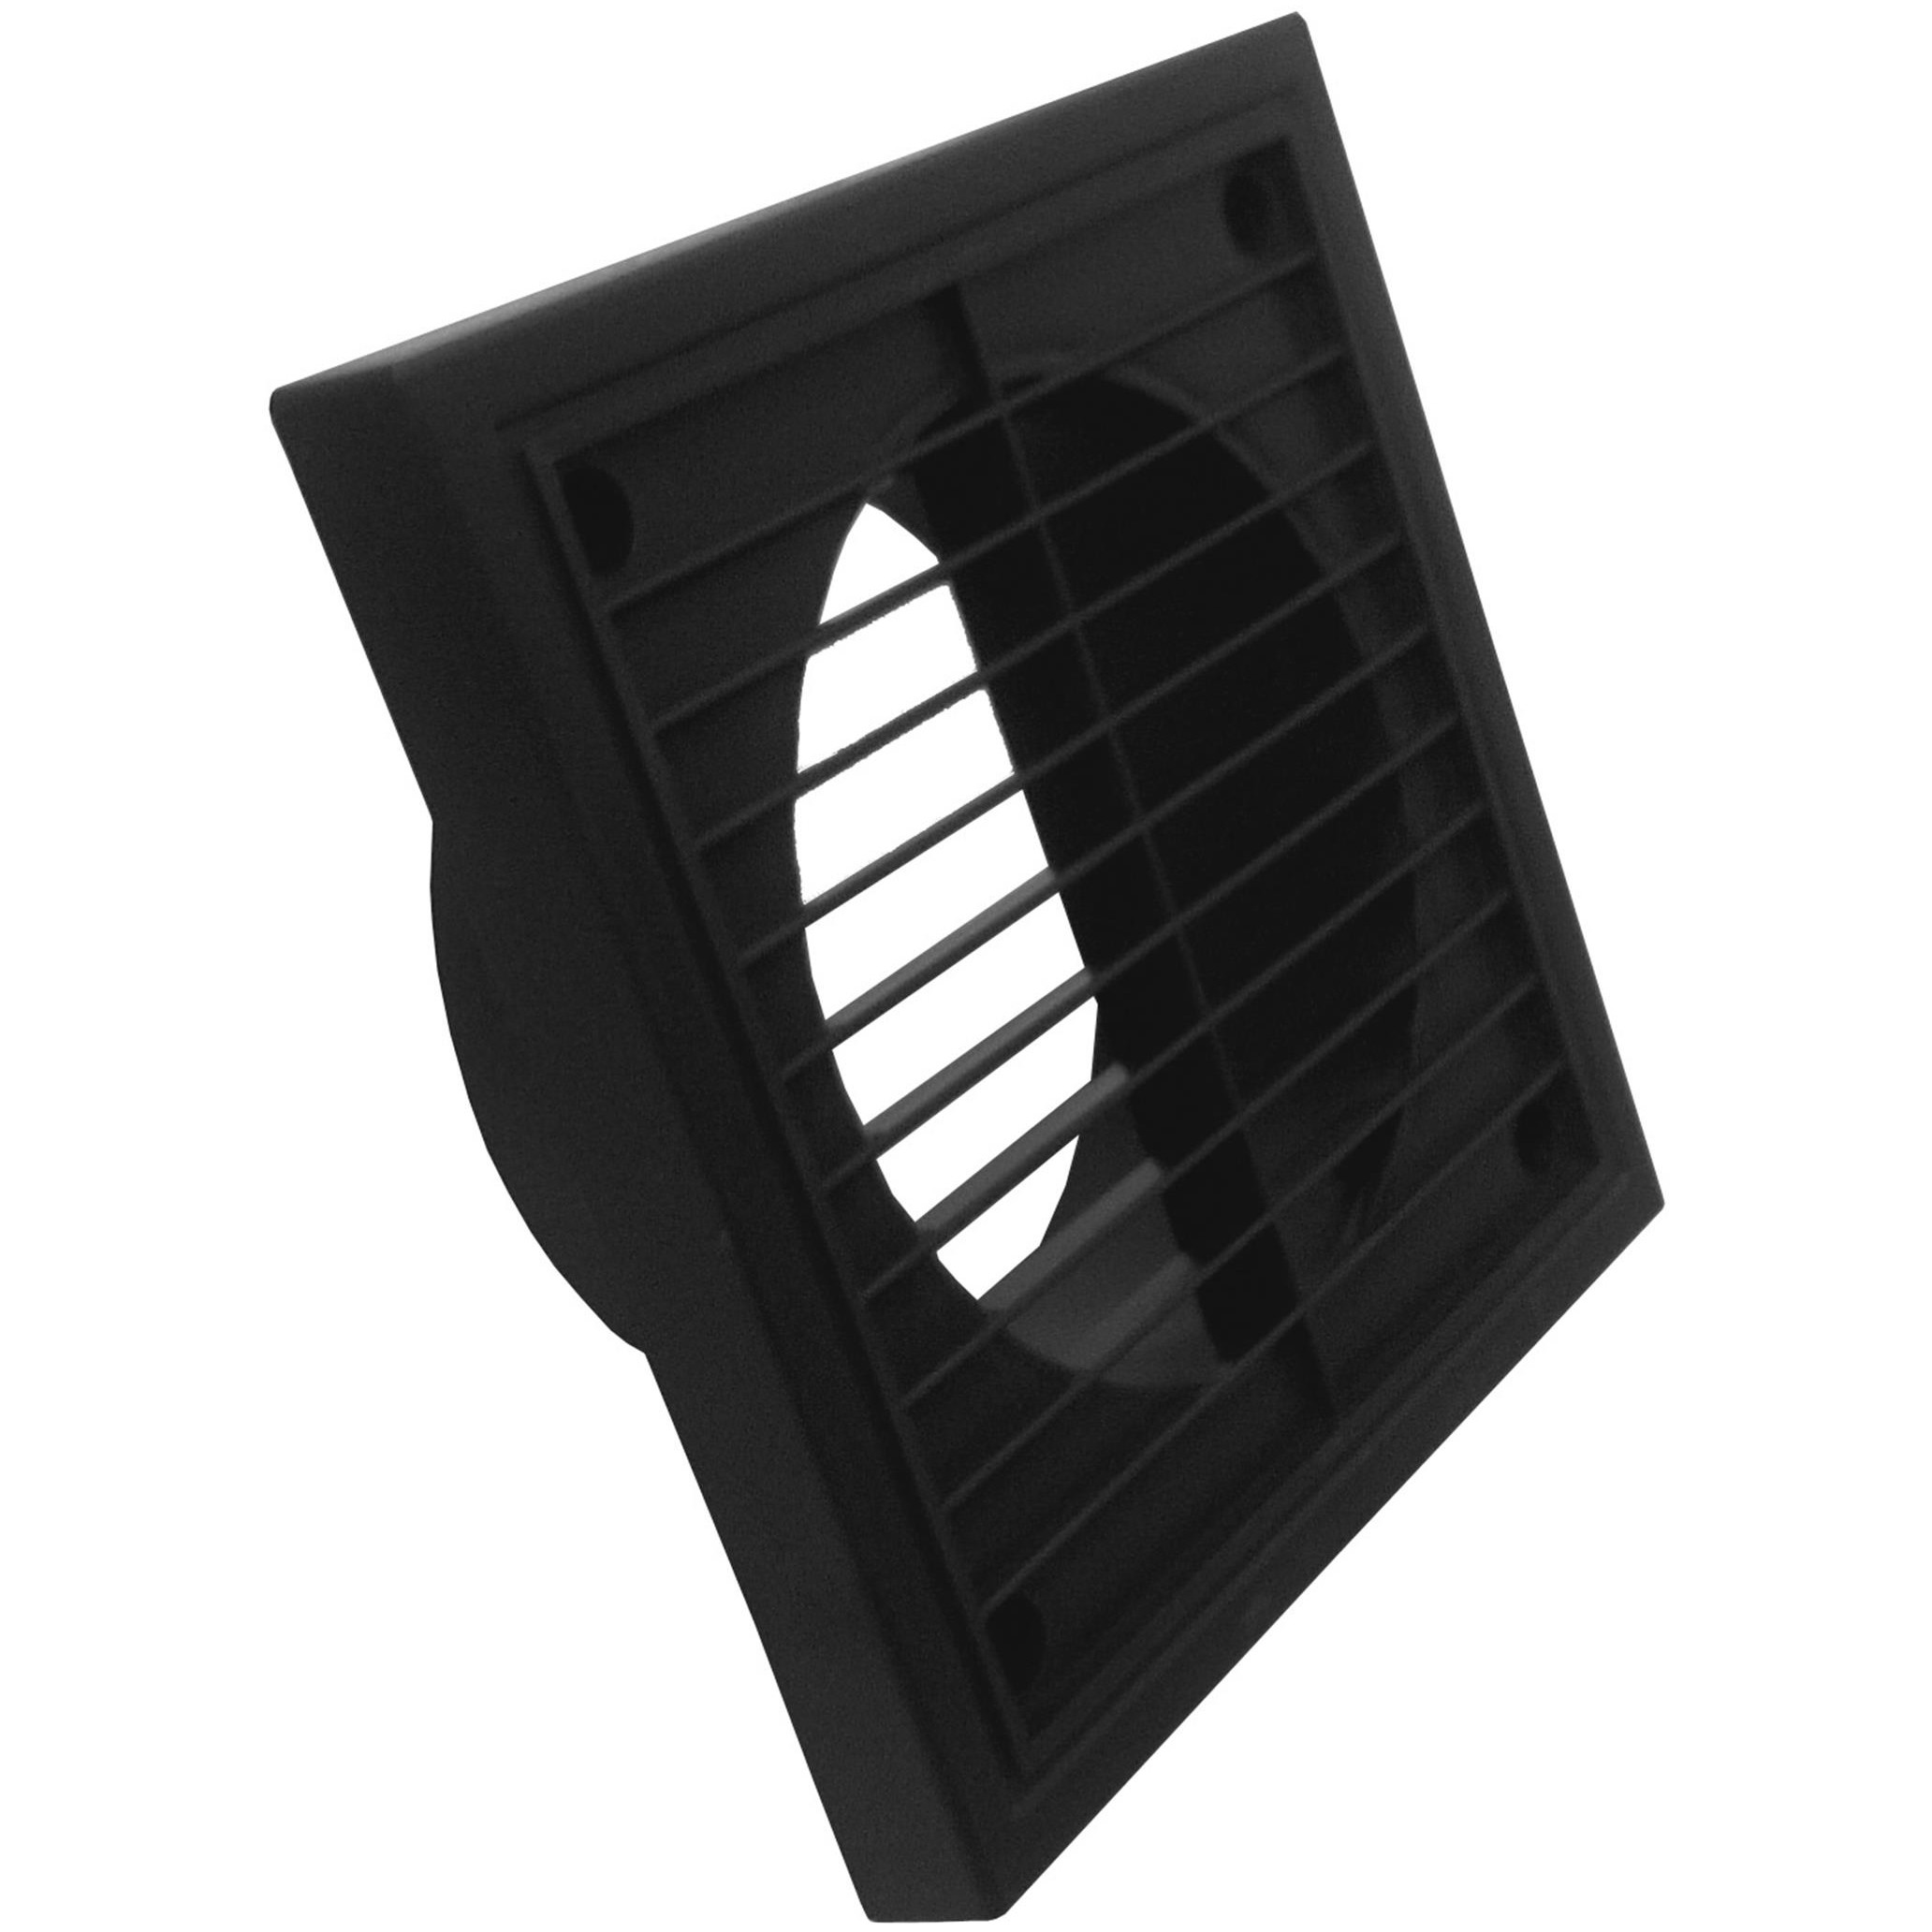 Manrose Round Ducting Pipe Fixed Grille Vent Outlet - Black, 100mm